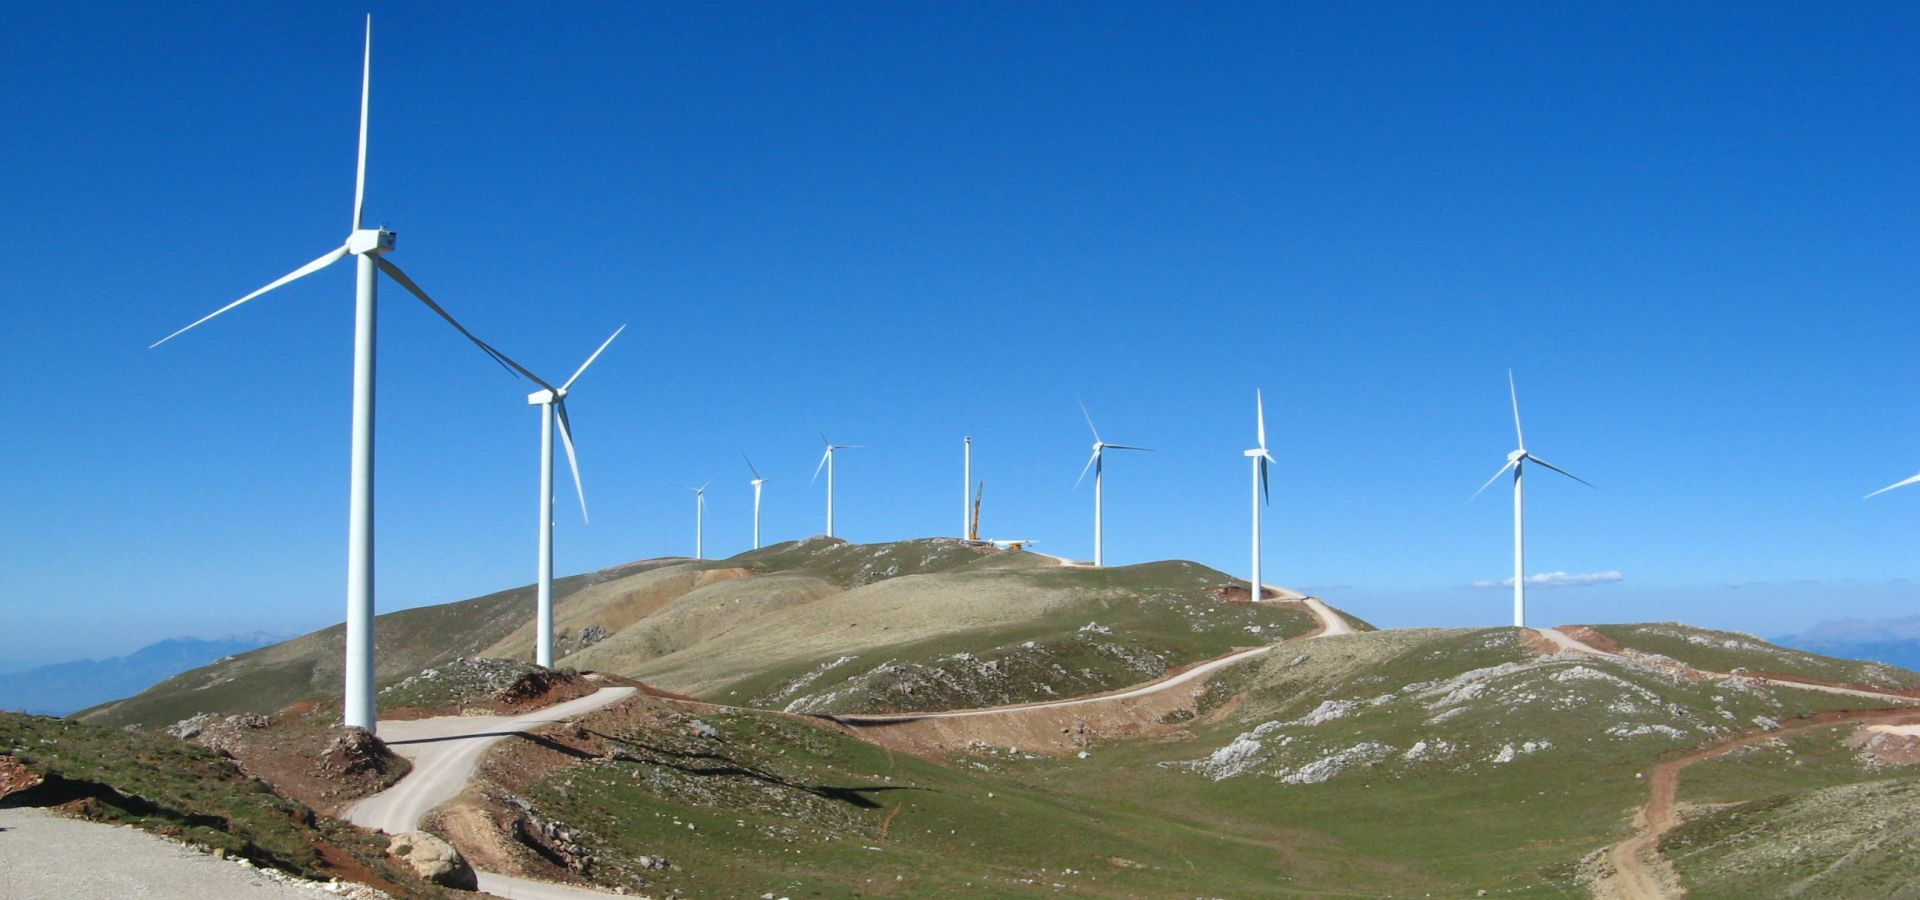 A wind farm in the Panachaiko mountain area.